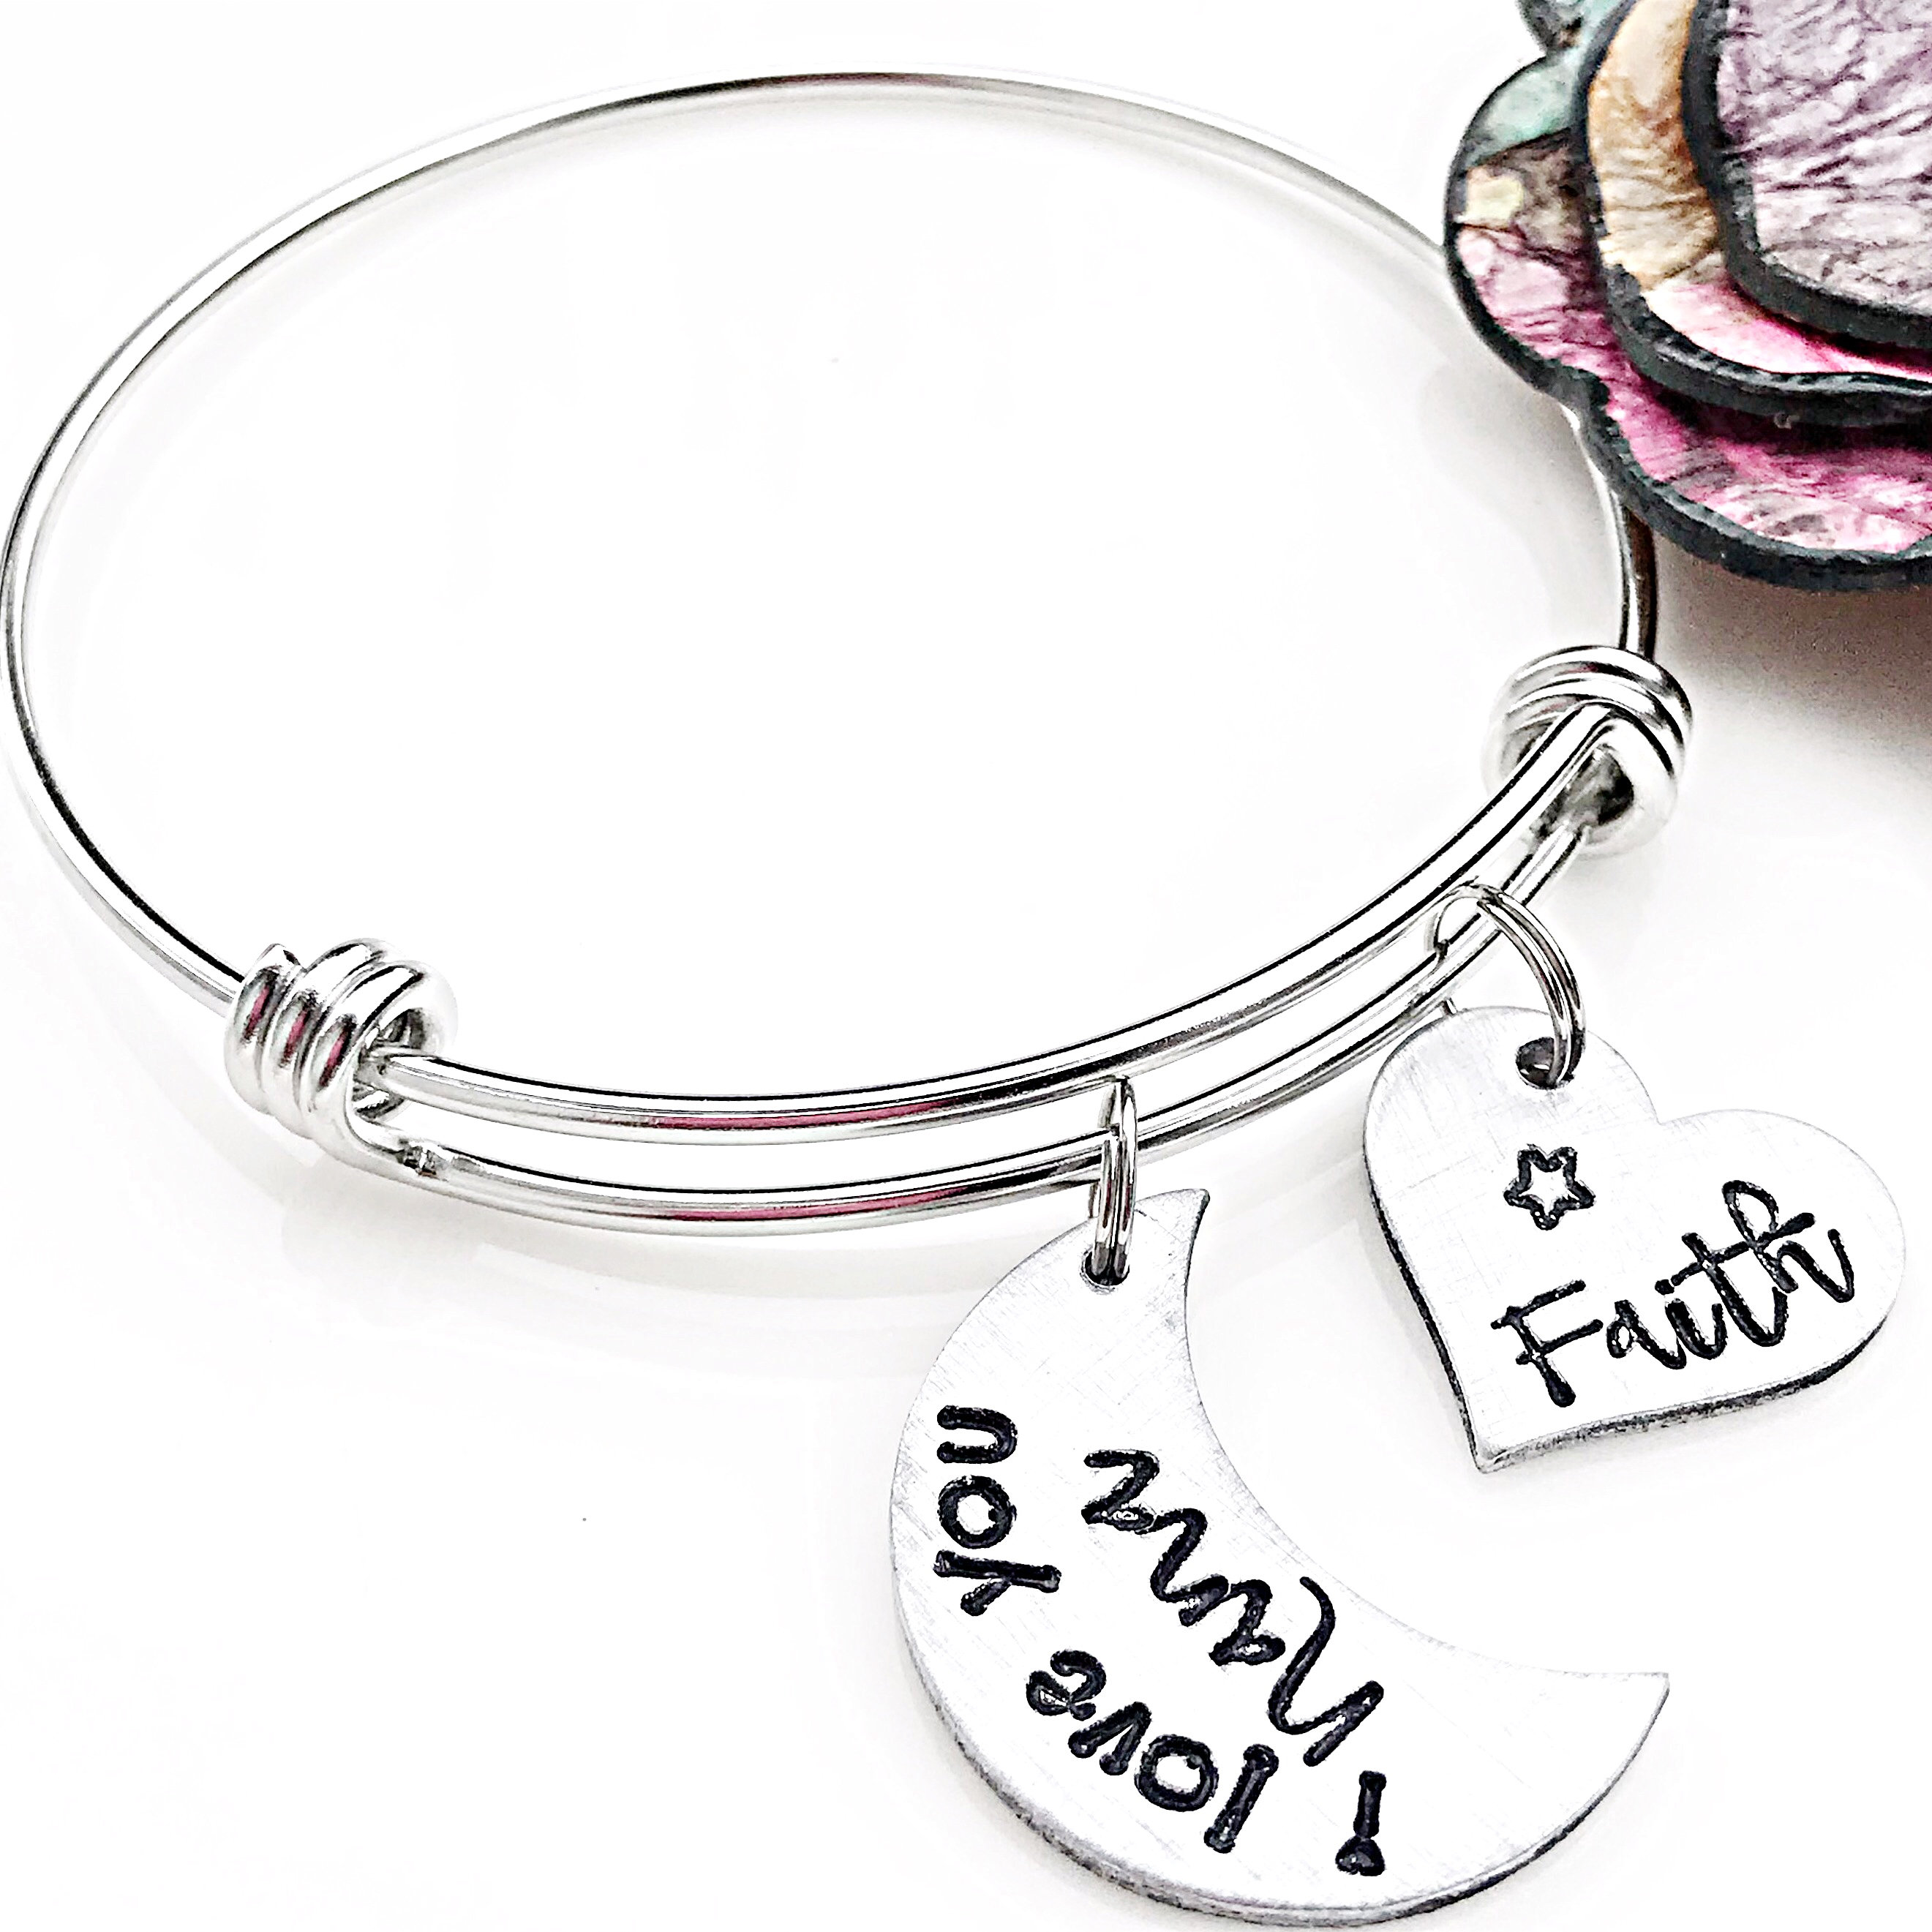 thumbprint stack grandchild james feather gracepersonalized em pin bracelet bangles avery